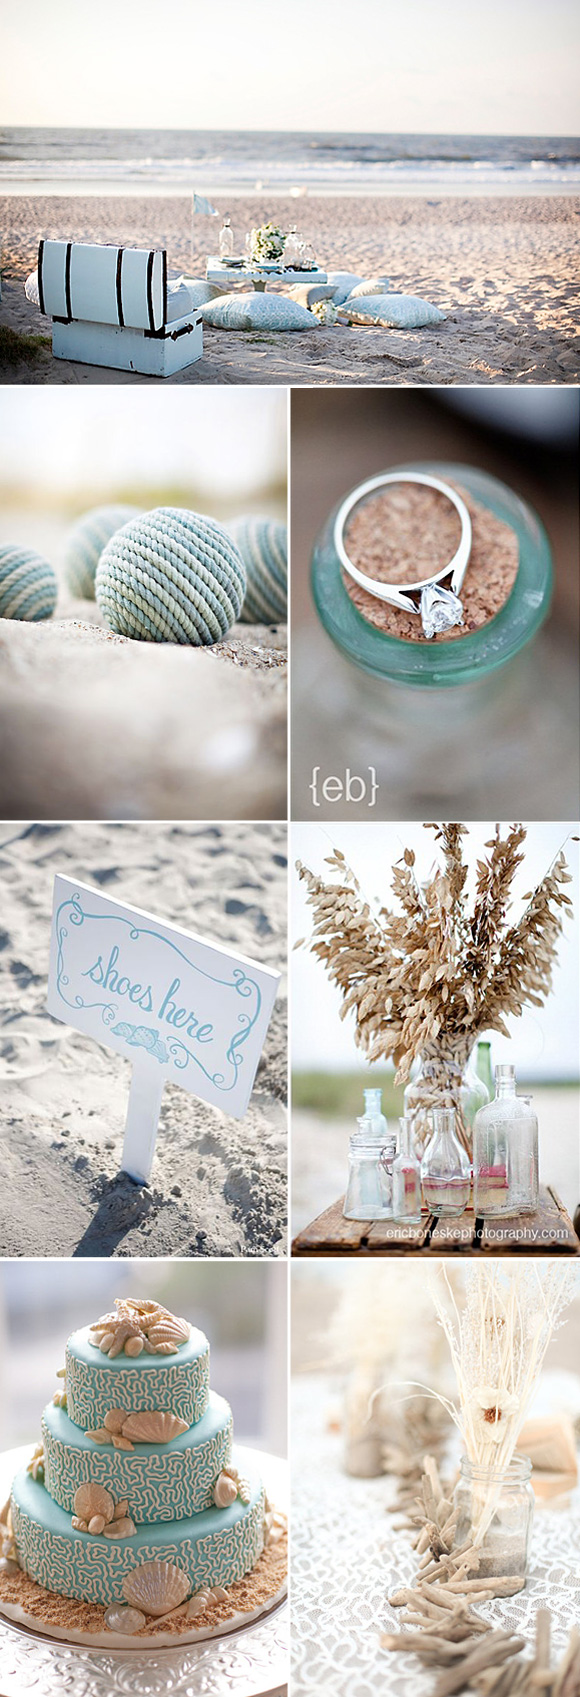 Bodas en la playa ideas para decorar bodas playeras - Ideas para una boda en la playa ...